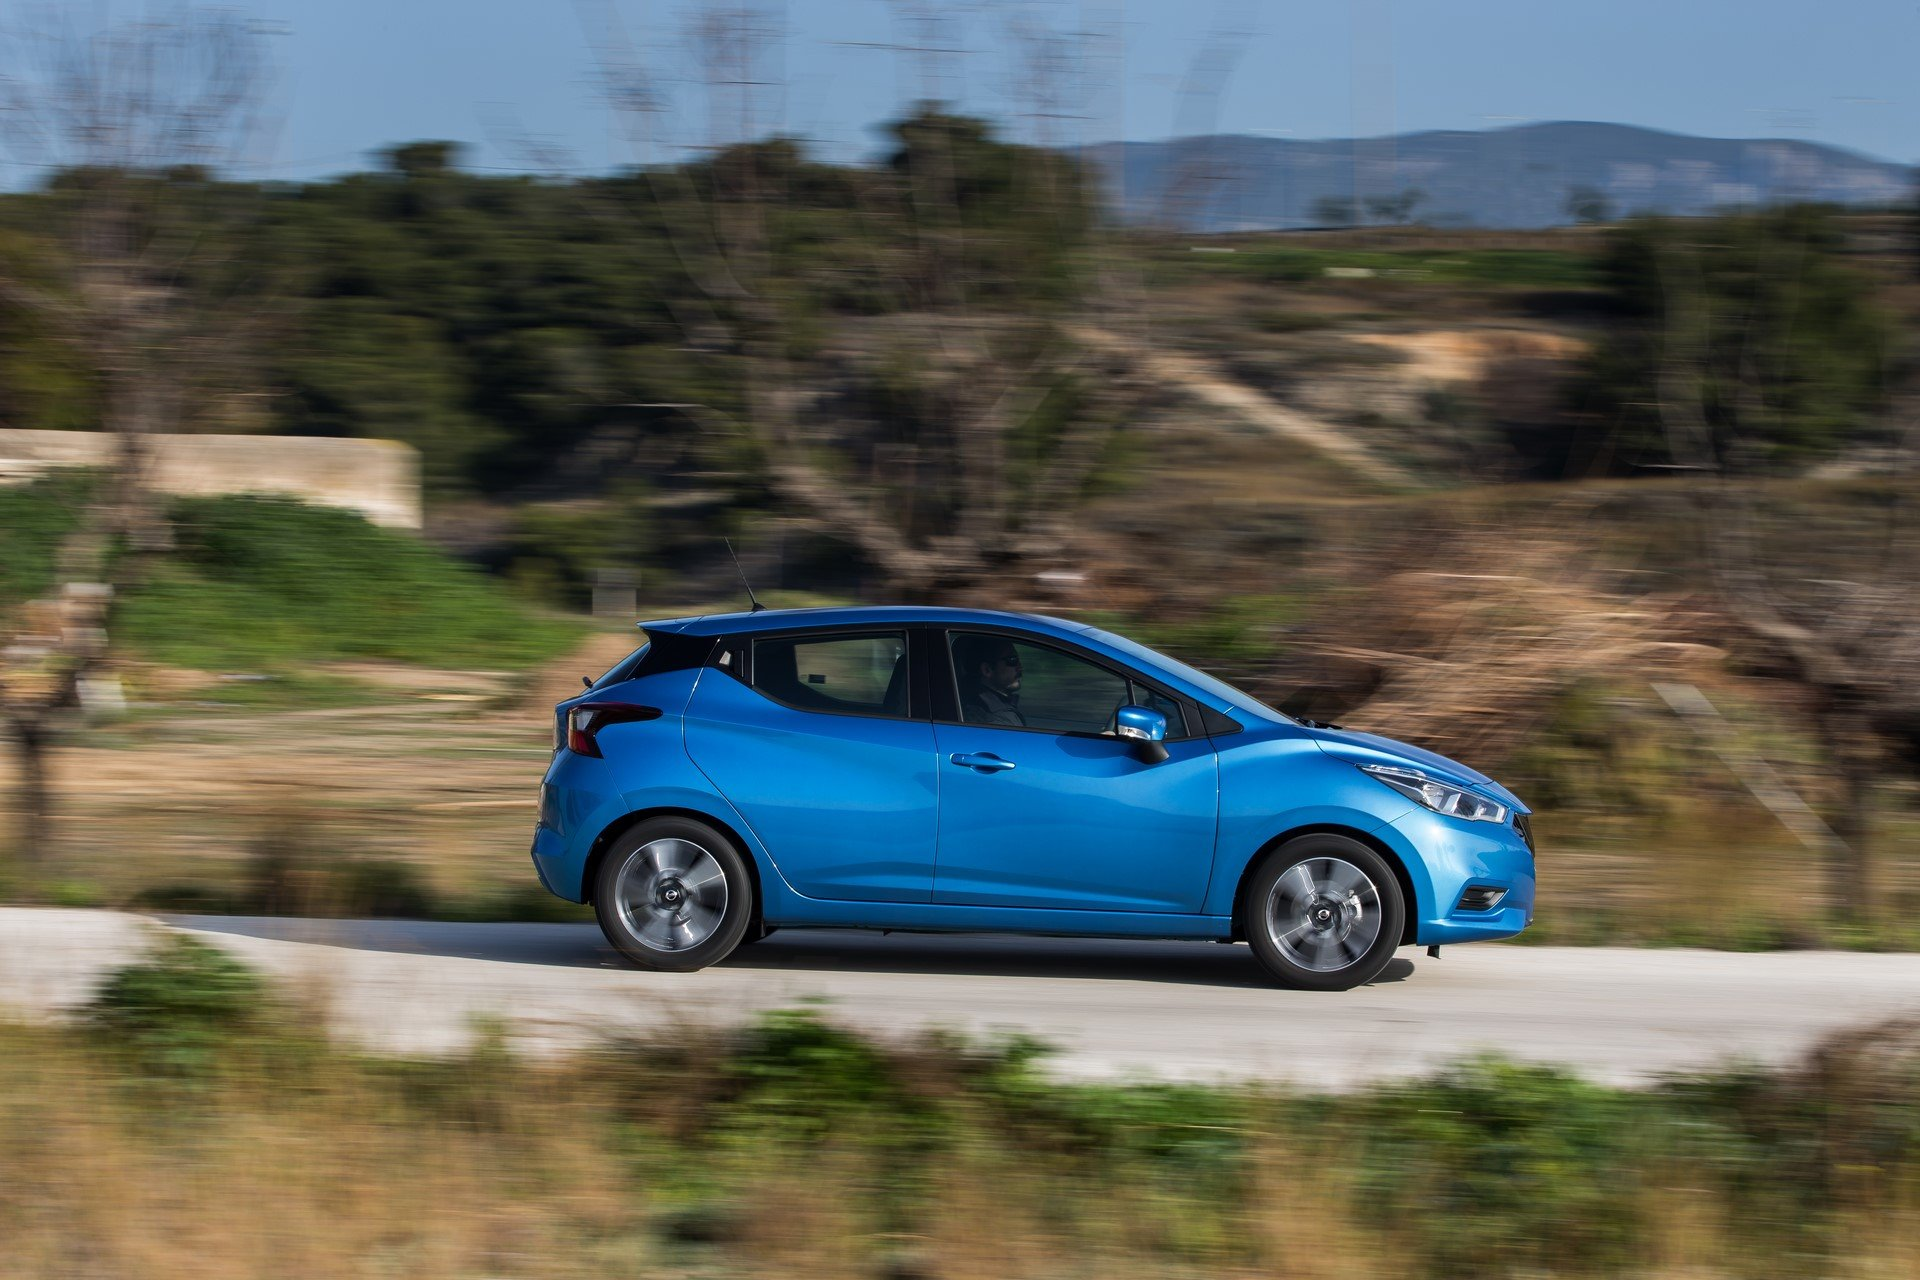 Nissan Micra 2019 Greek (47)